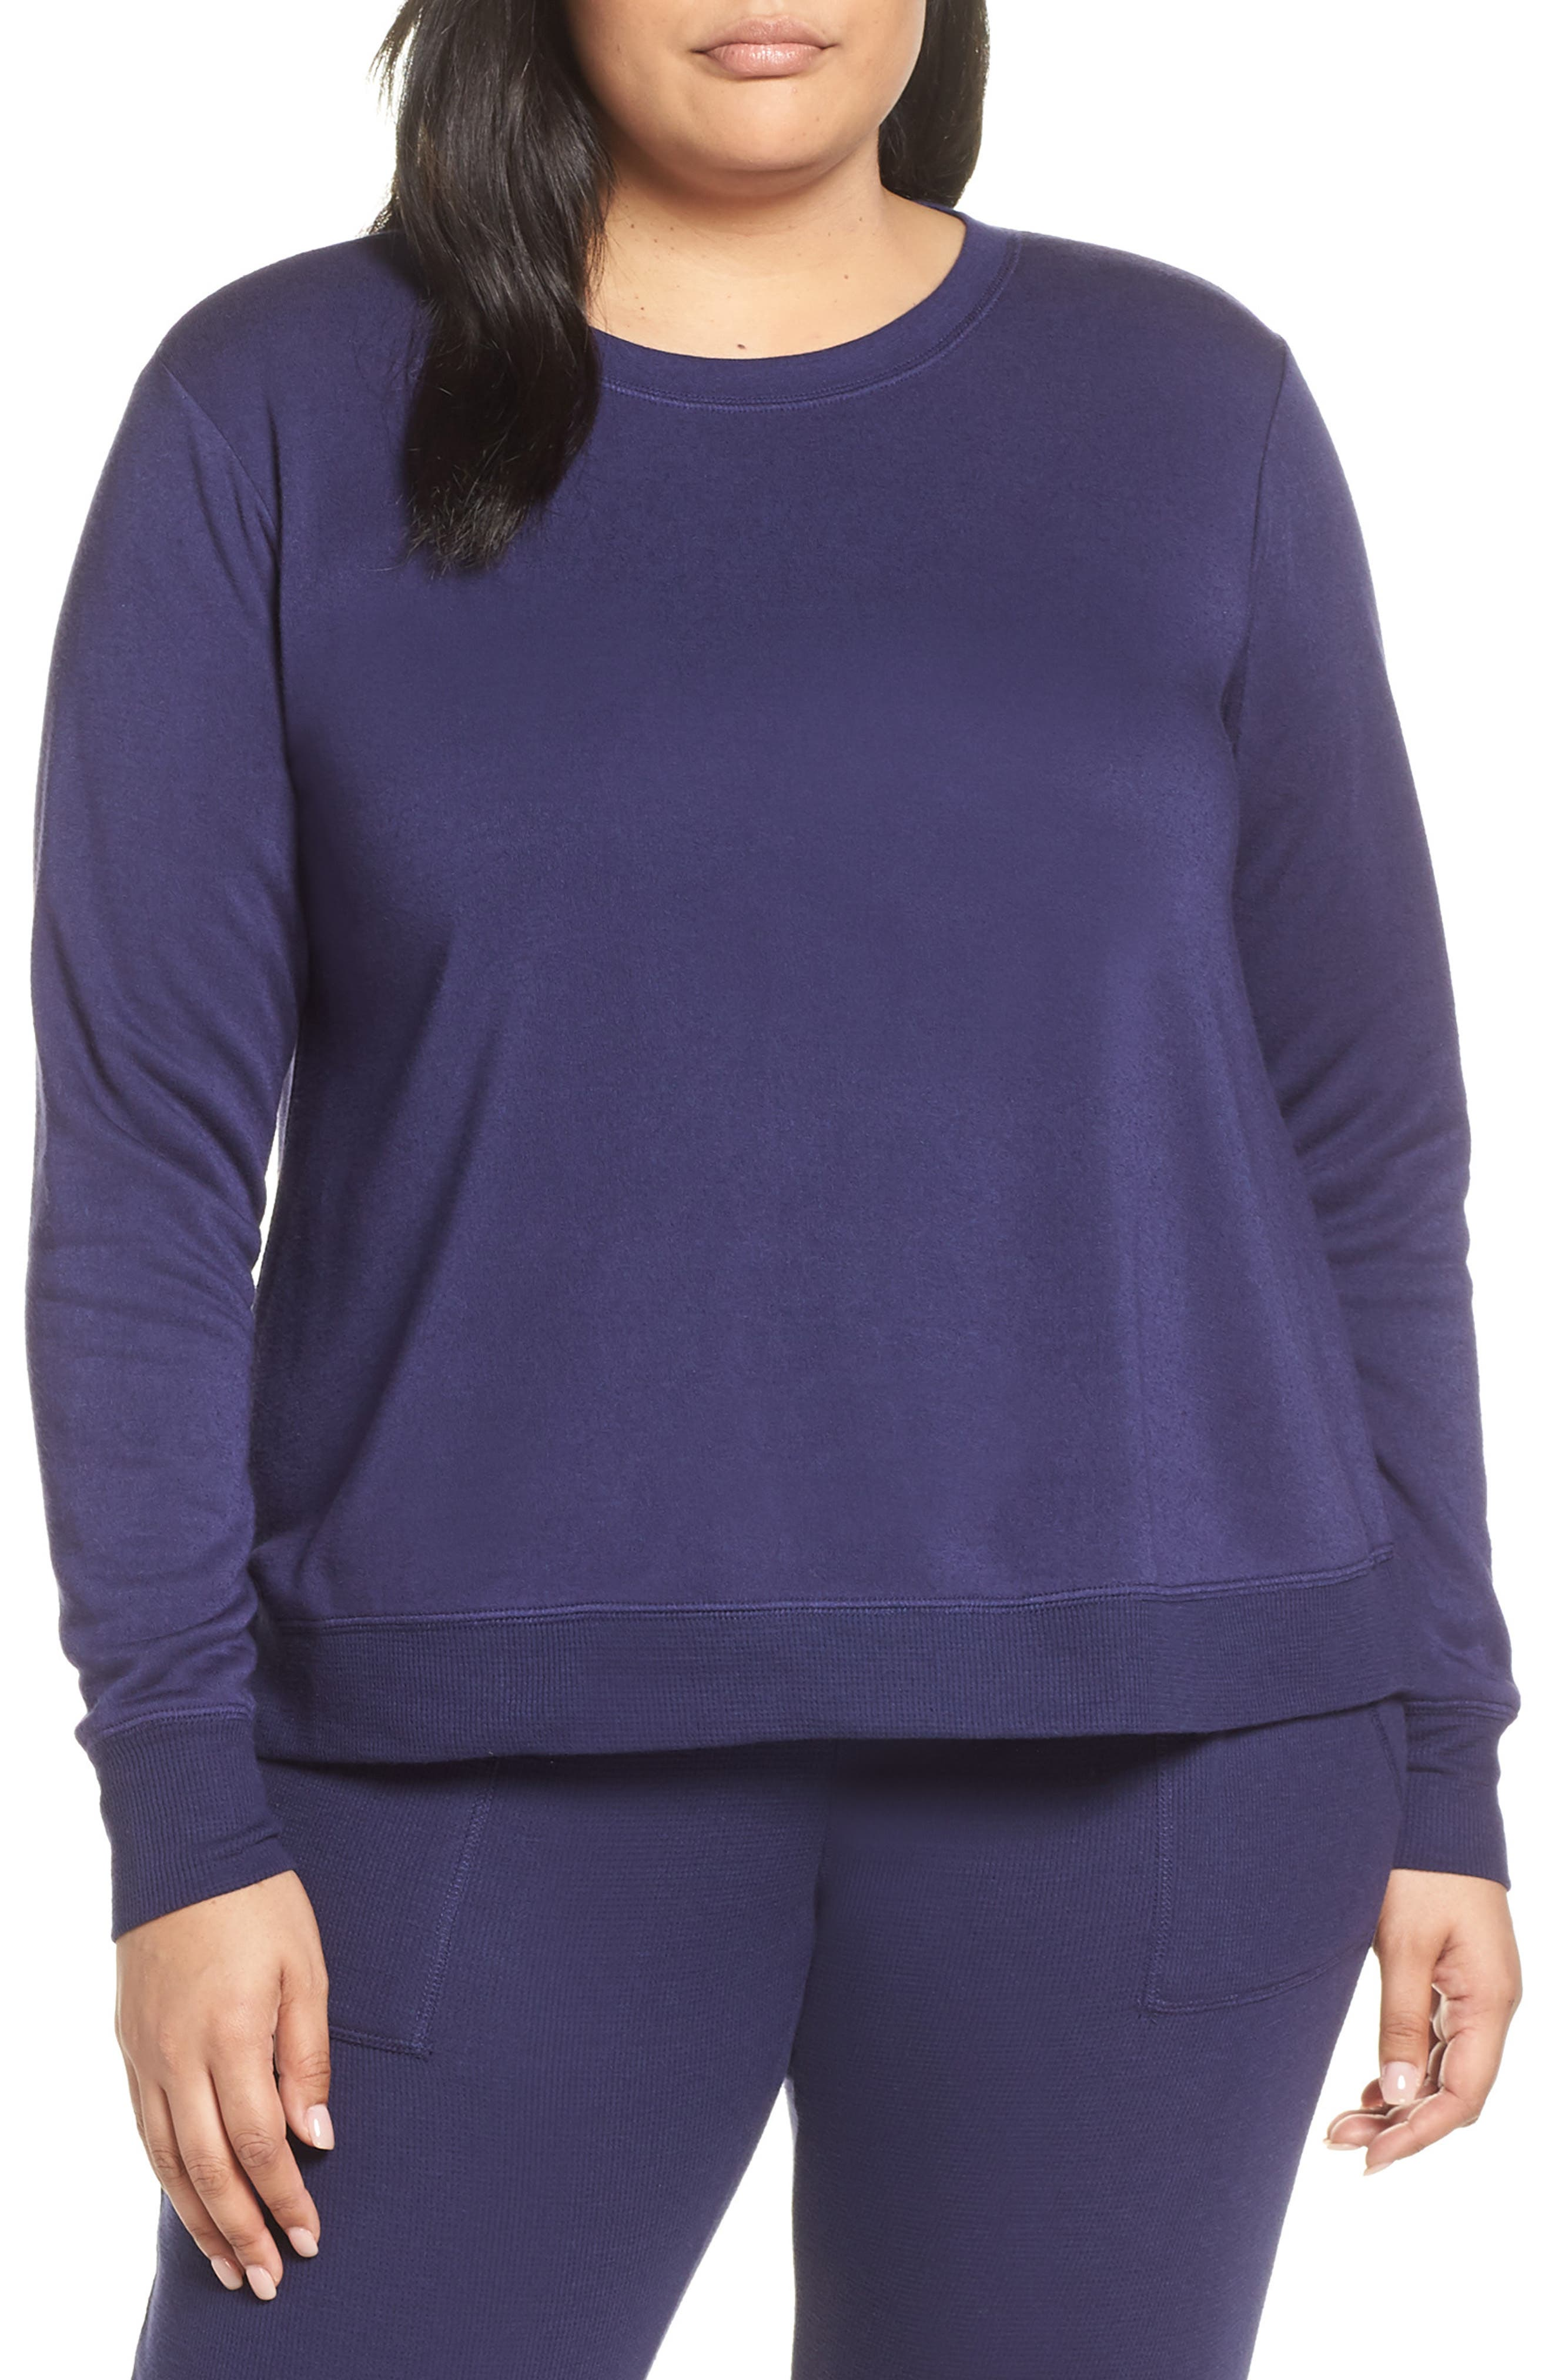 This Is It Sweatshirt,                             Main thumbnail 1, color,                             NAVY DUSK